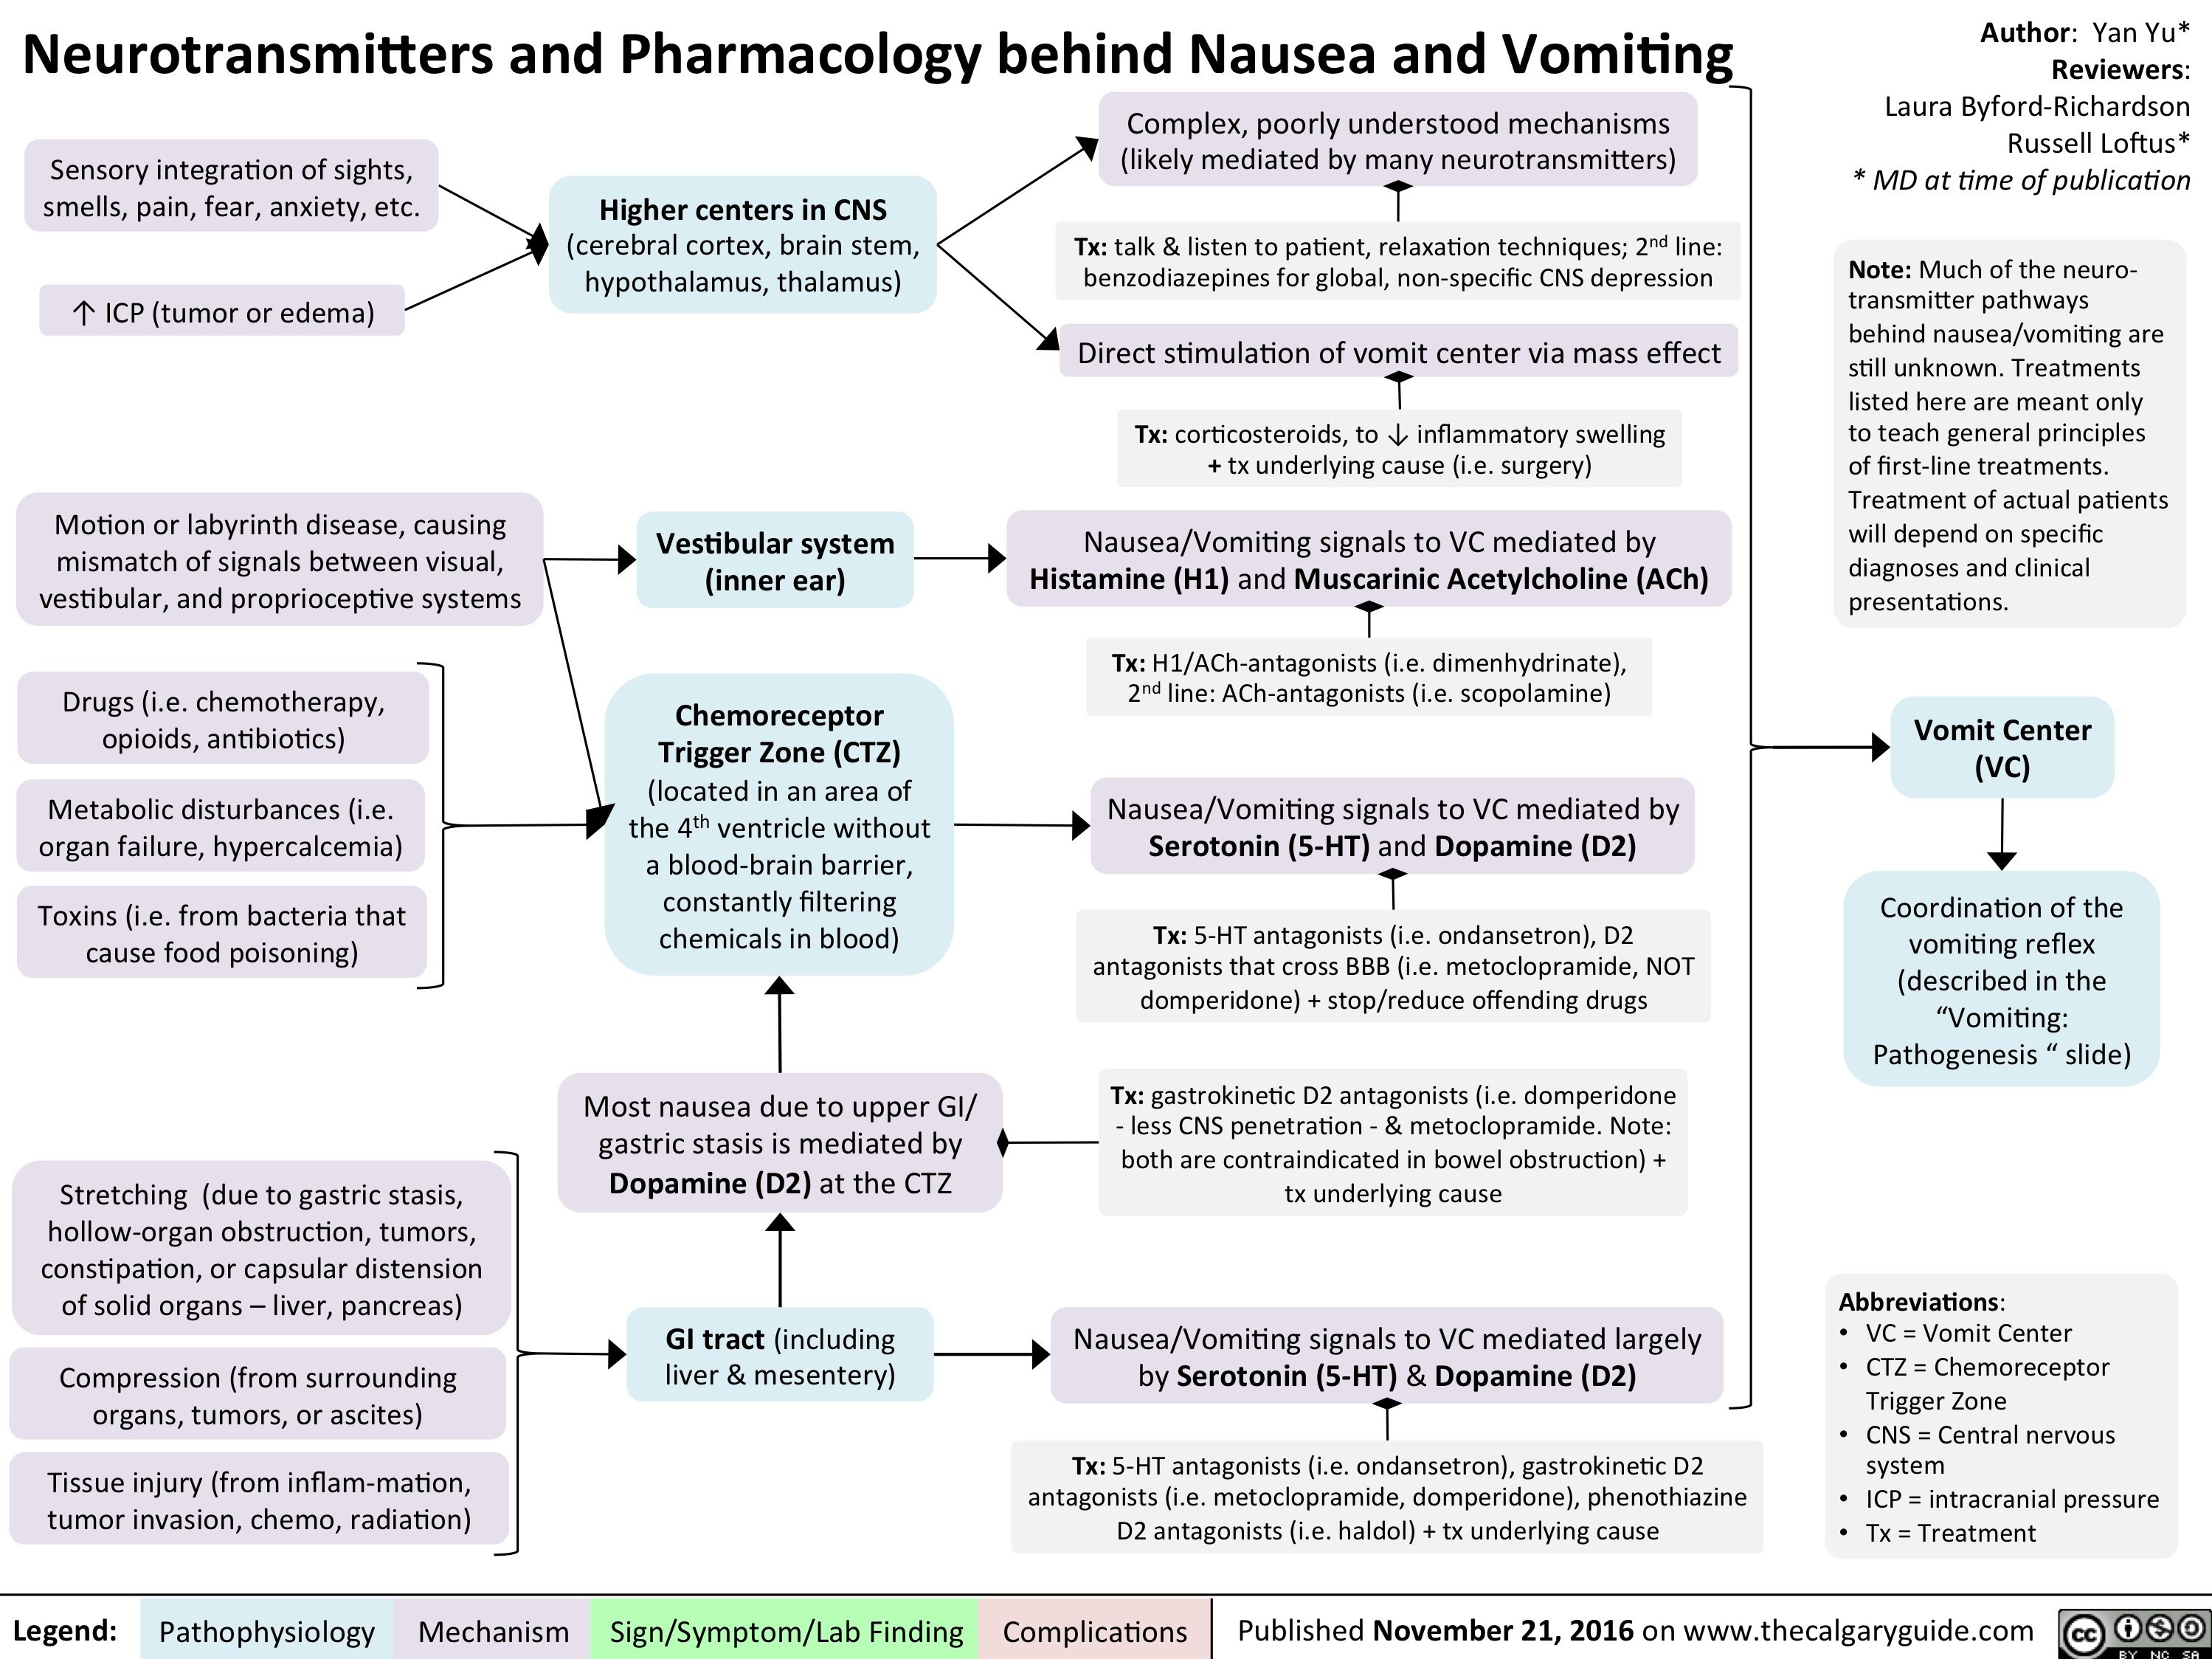 Neurotransmitters and Pharmacology behind Nausea and Vomiting